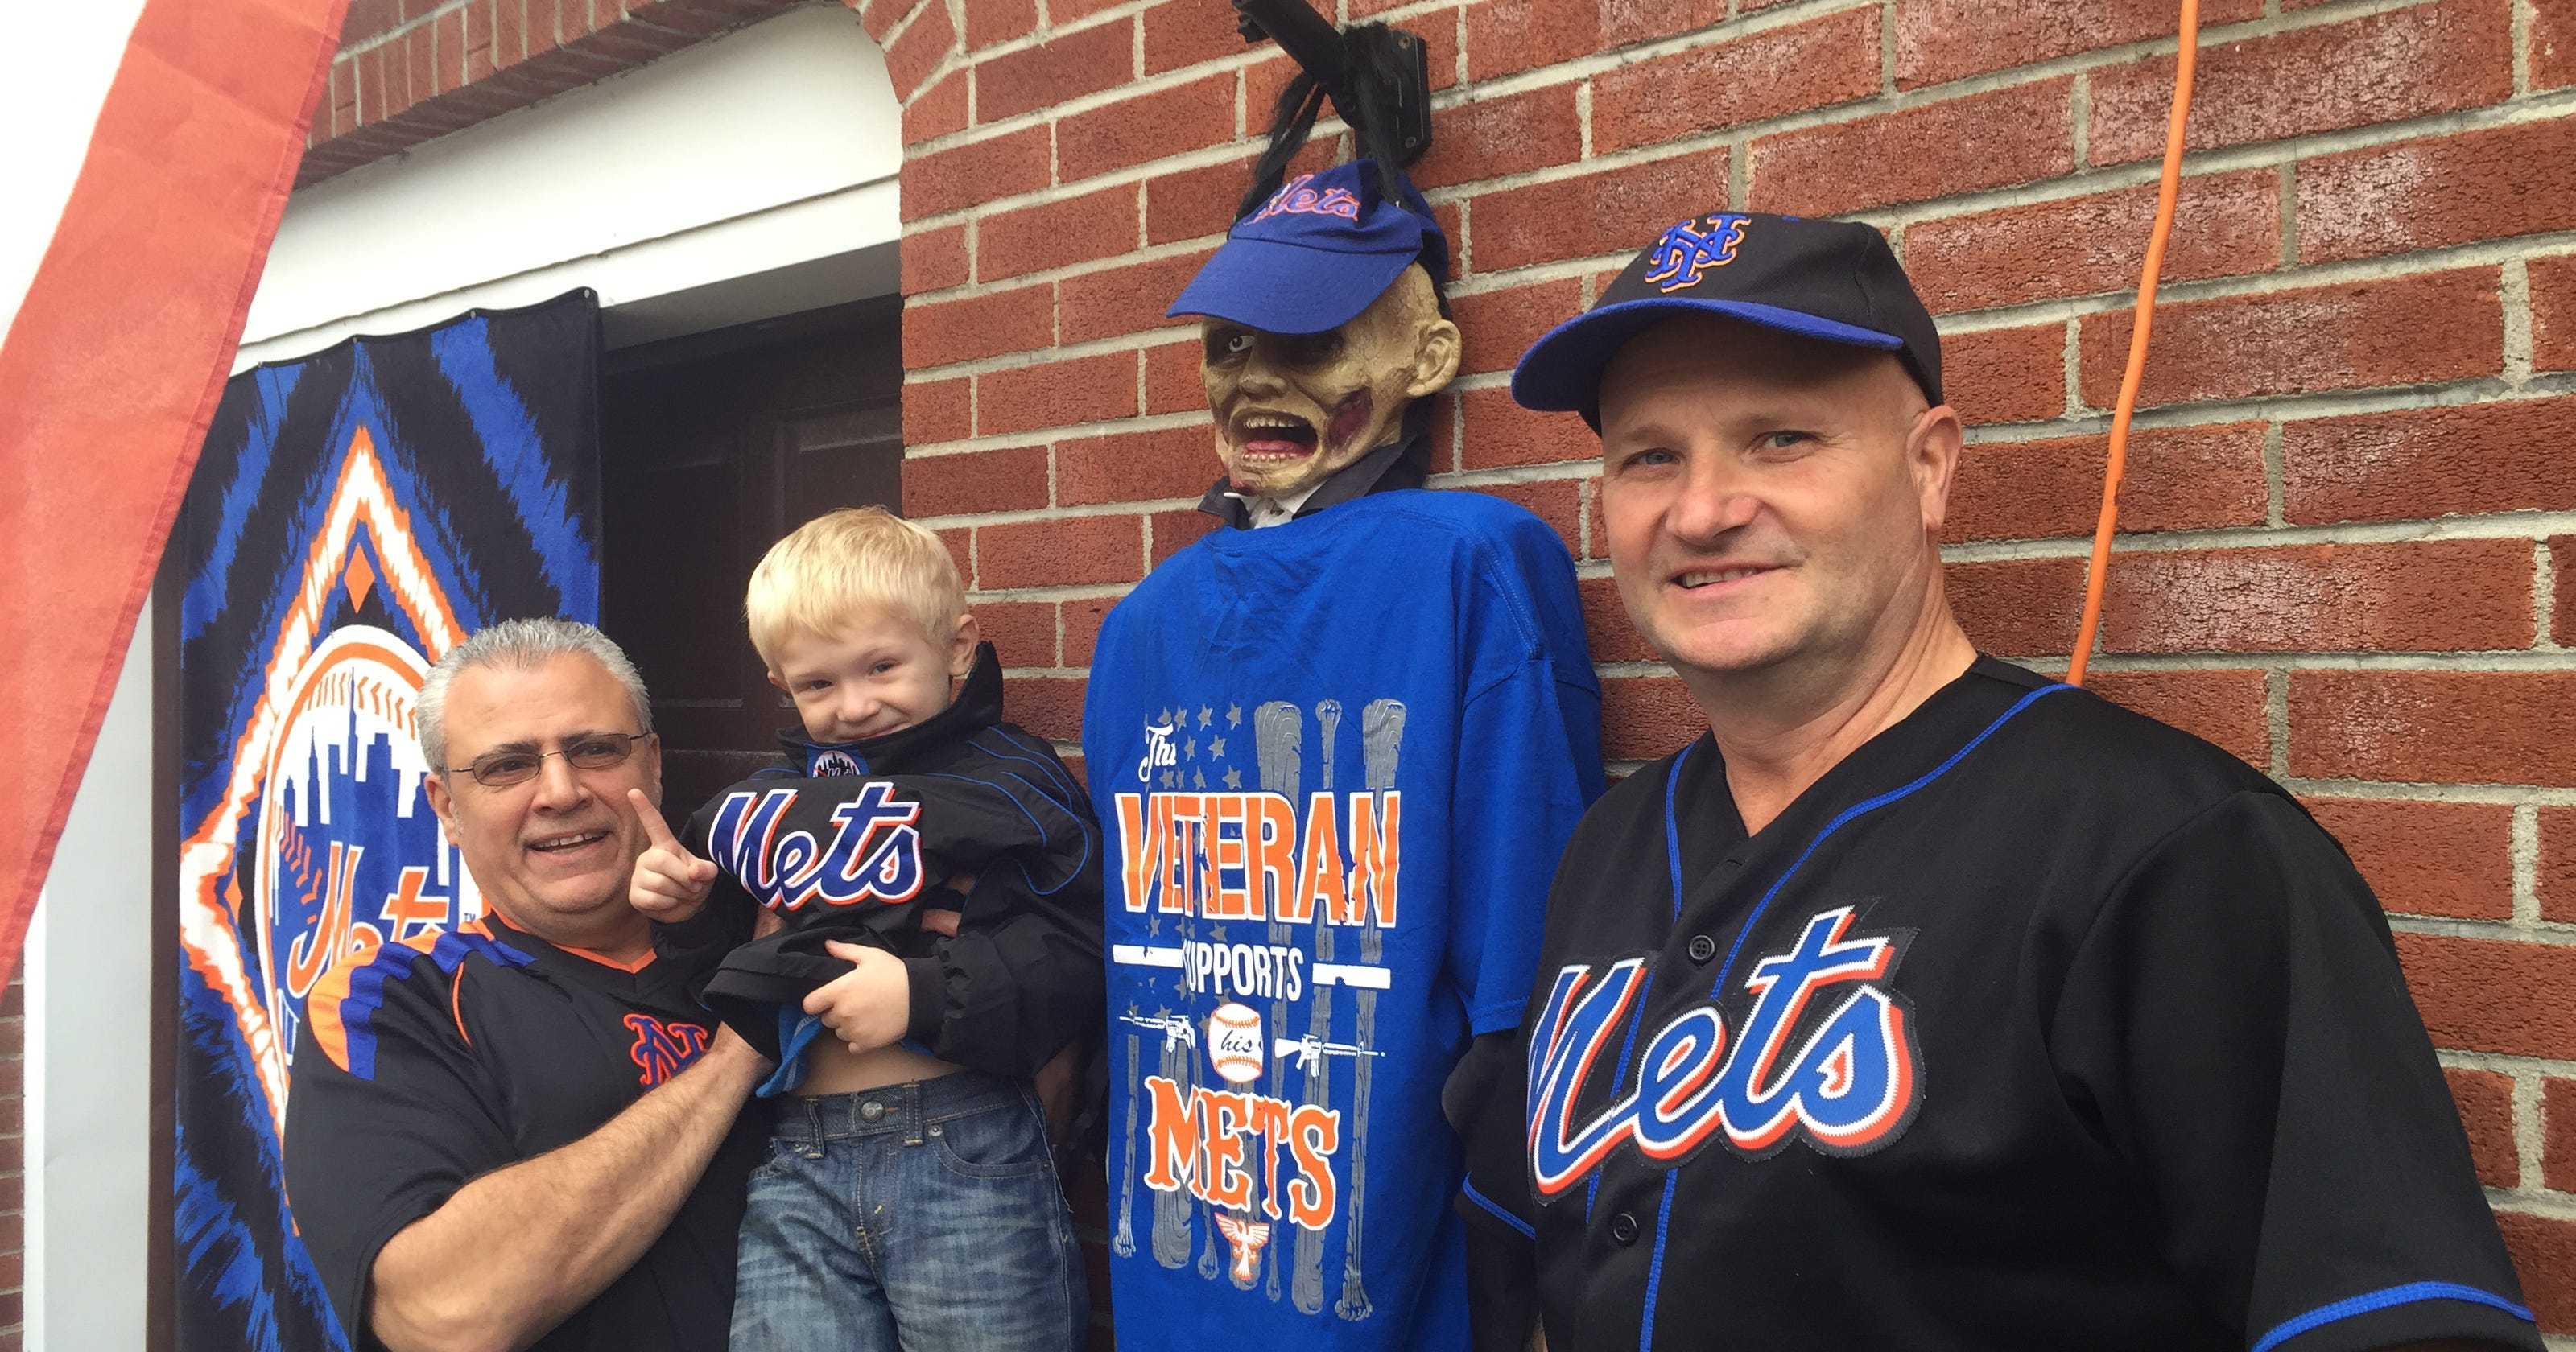 Cuomo proud of New York Mets, his 'hometown team,' after NLCS win ... | 1680x3200